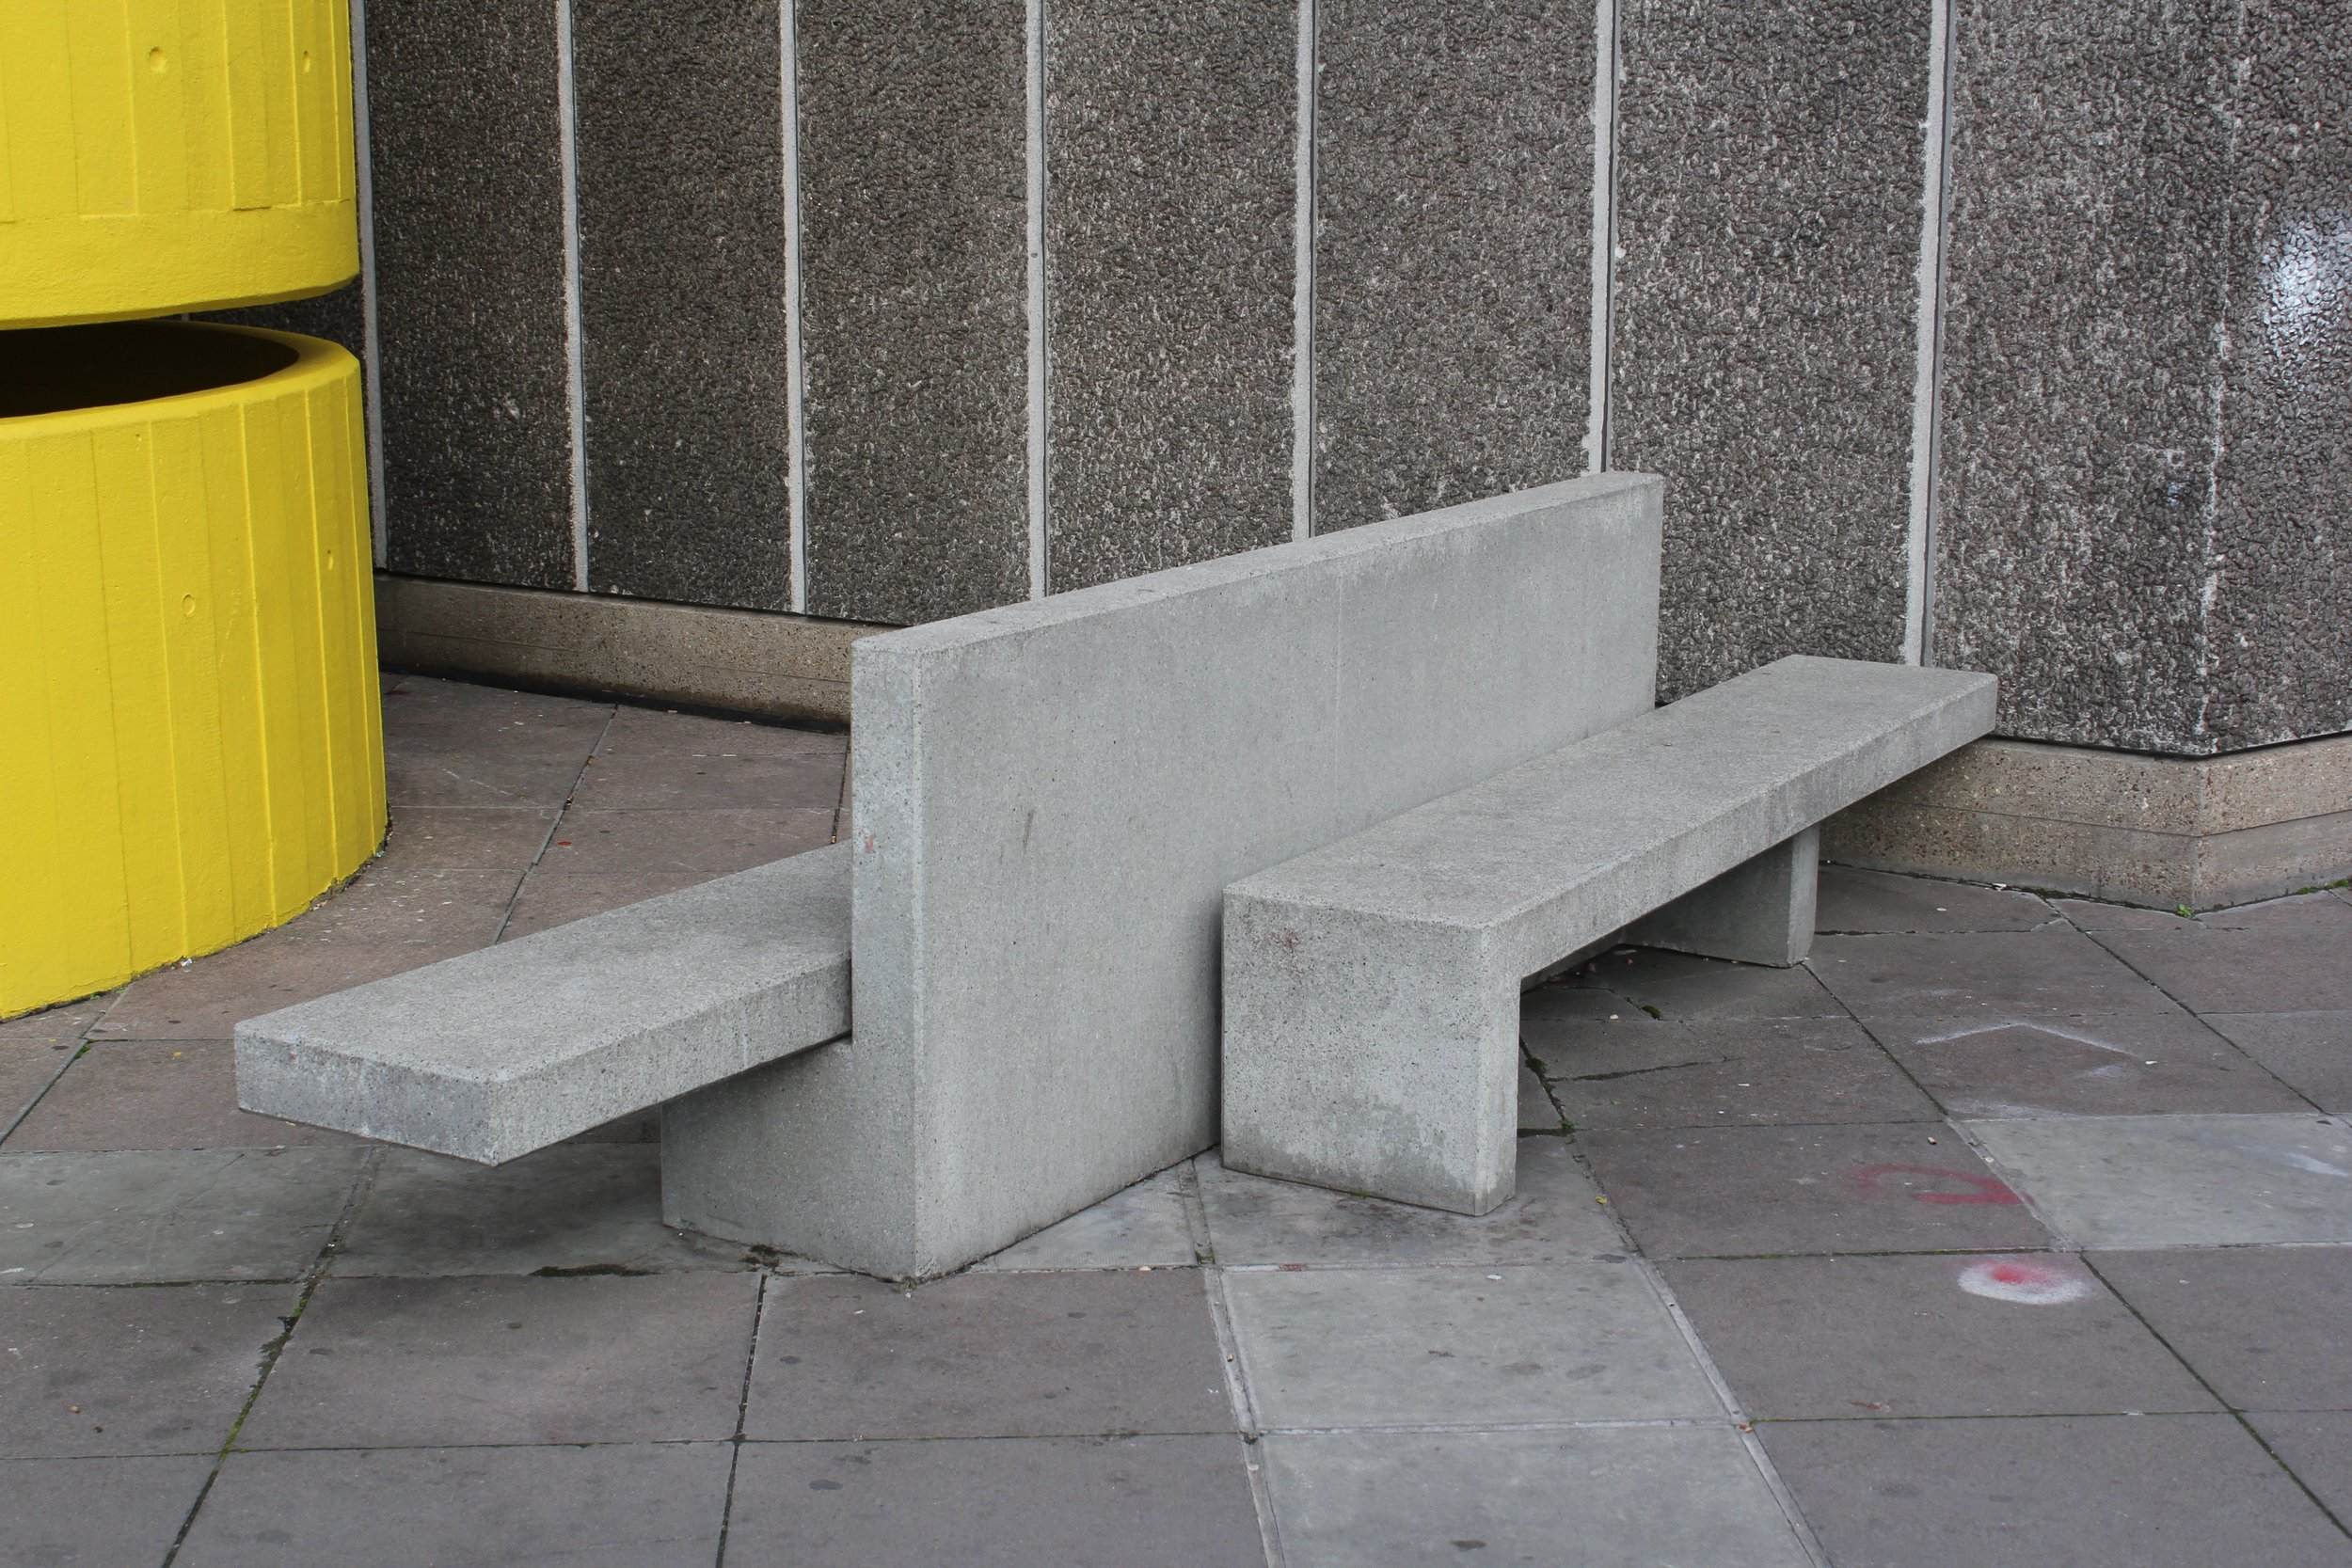 Find this seat on the South Bank